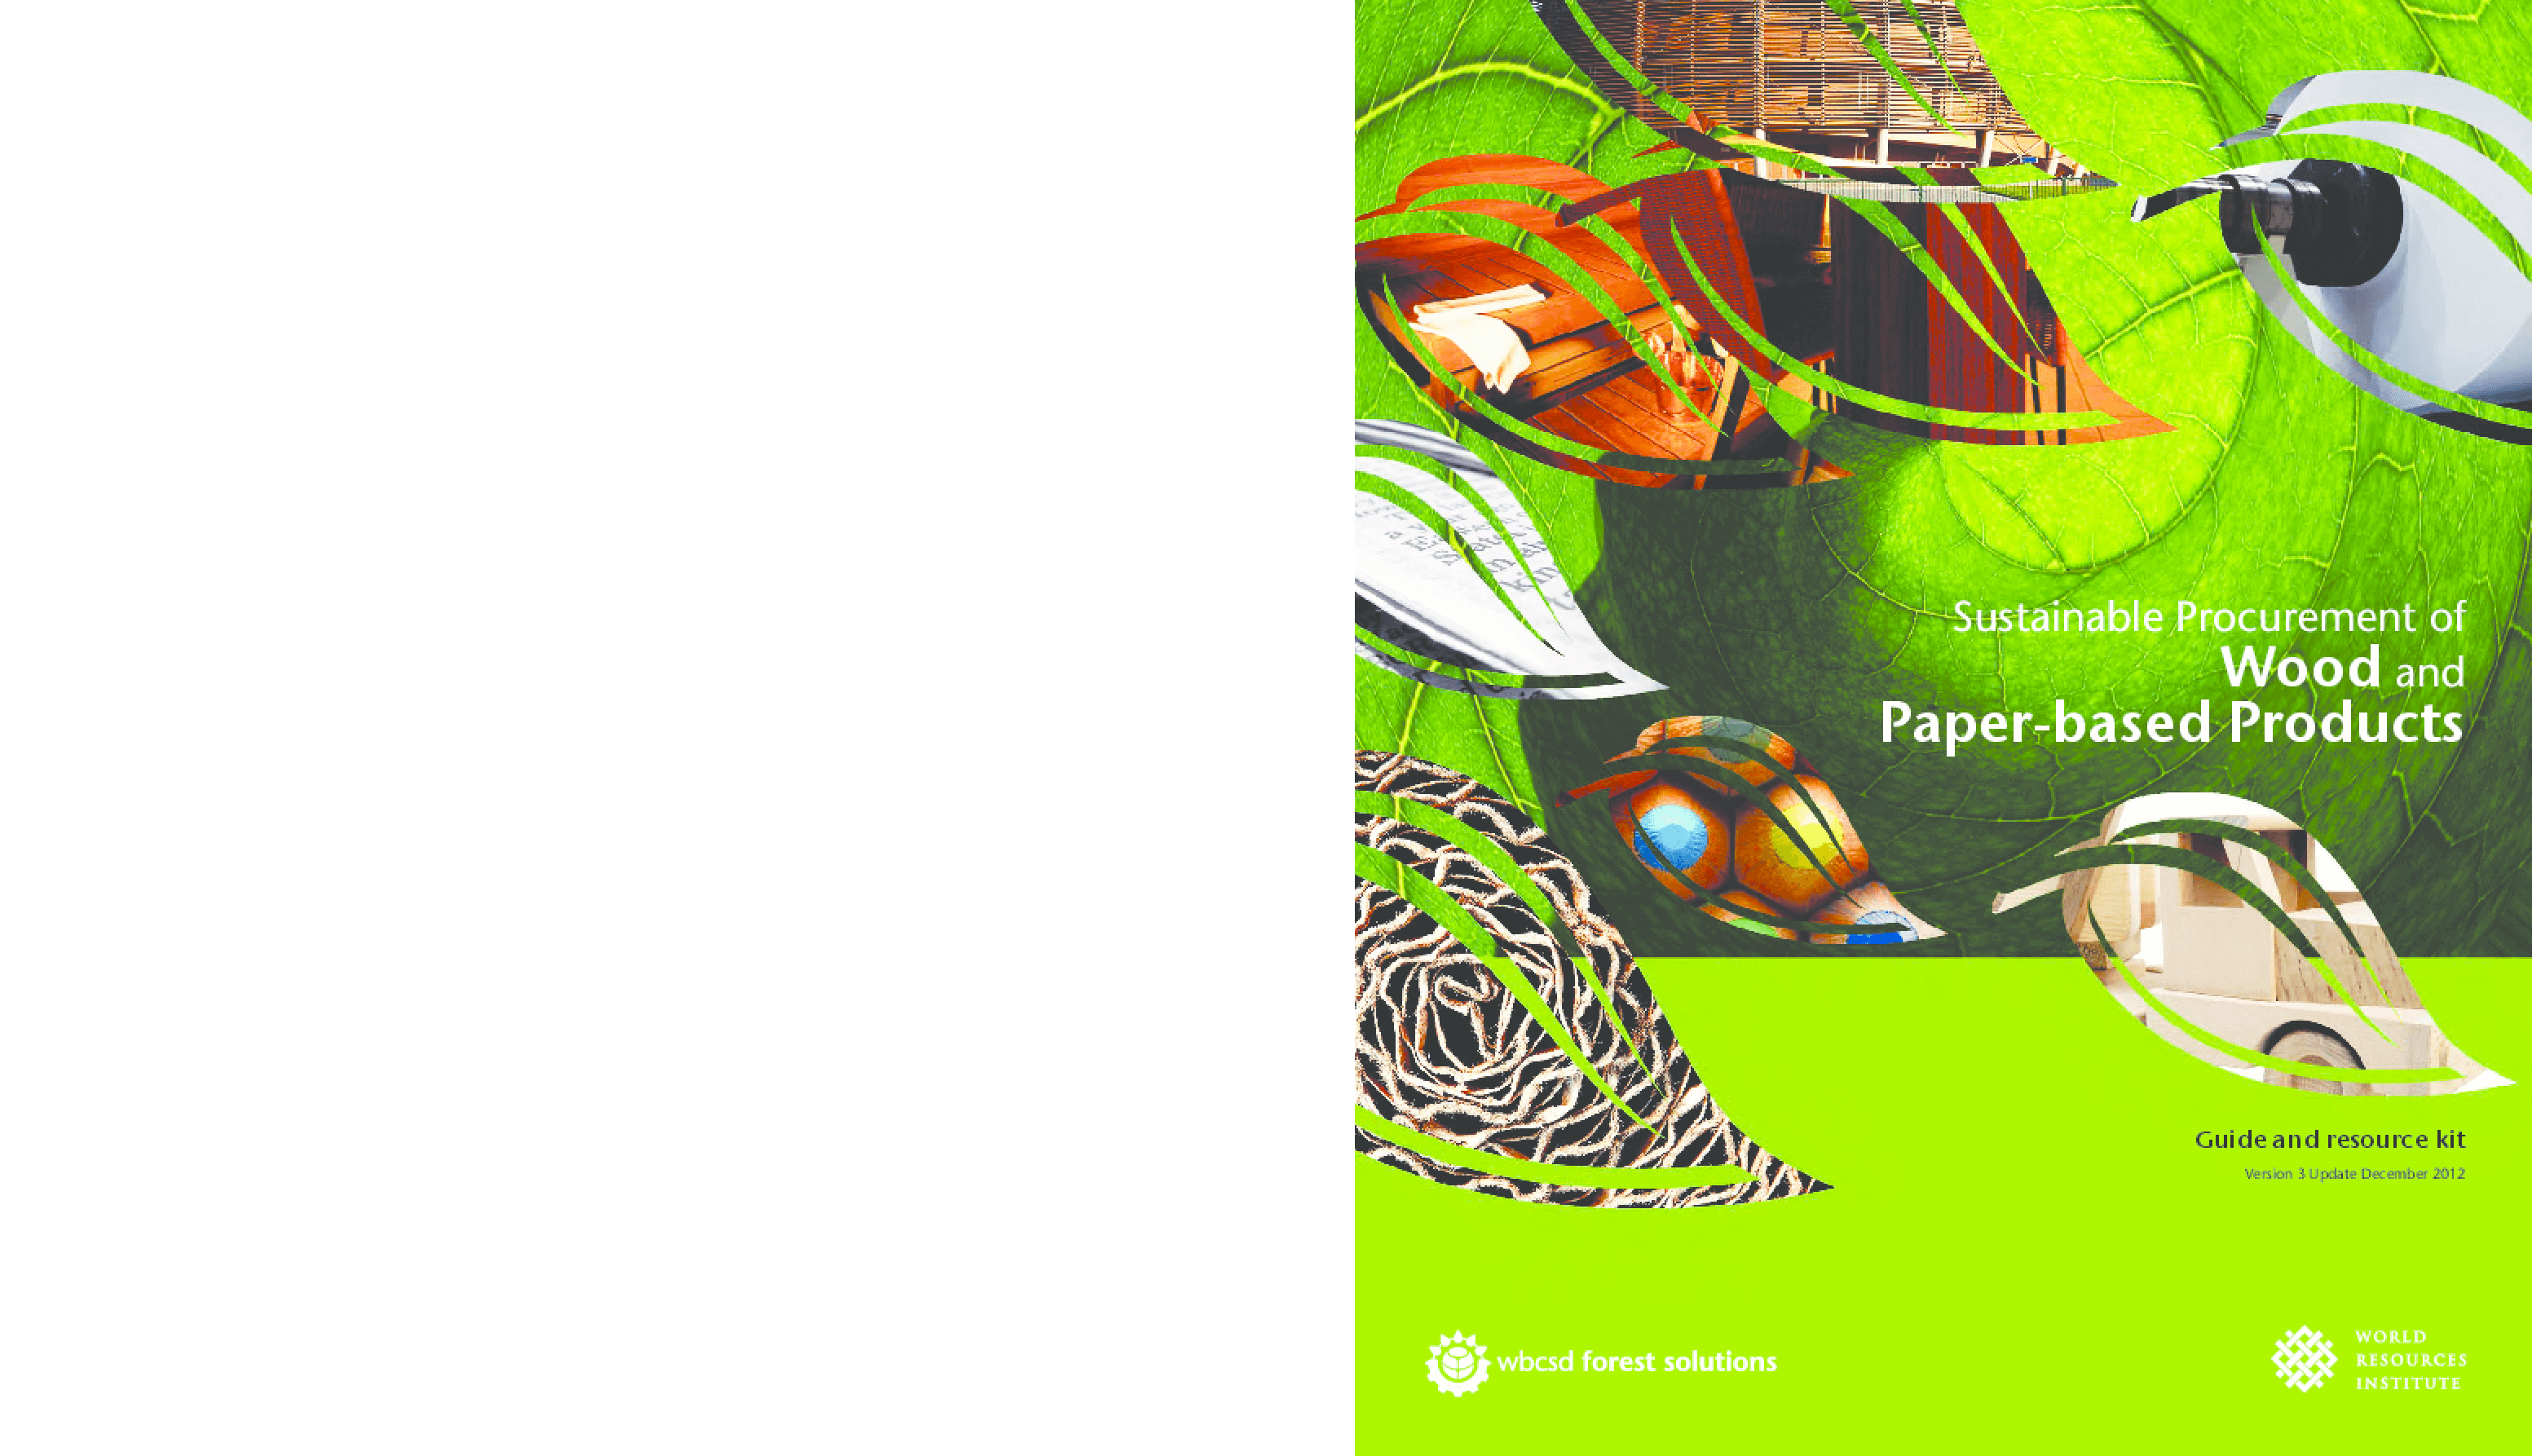 Sustainable Procurement of Wood and Paper-Based Products: Version 3